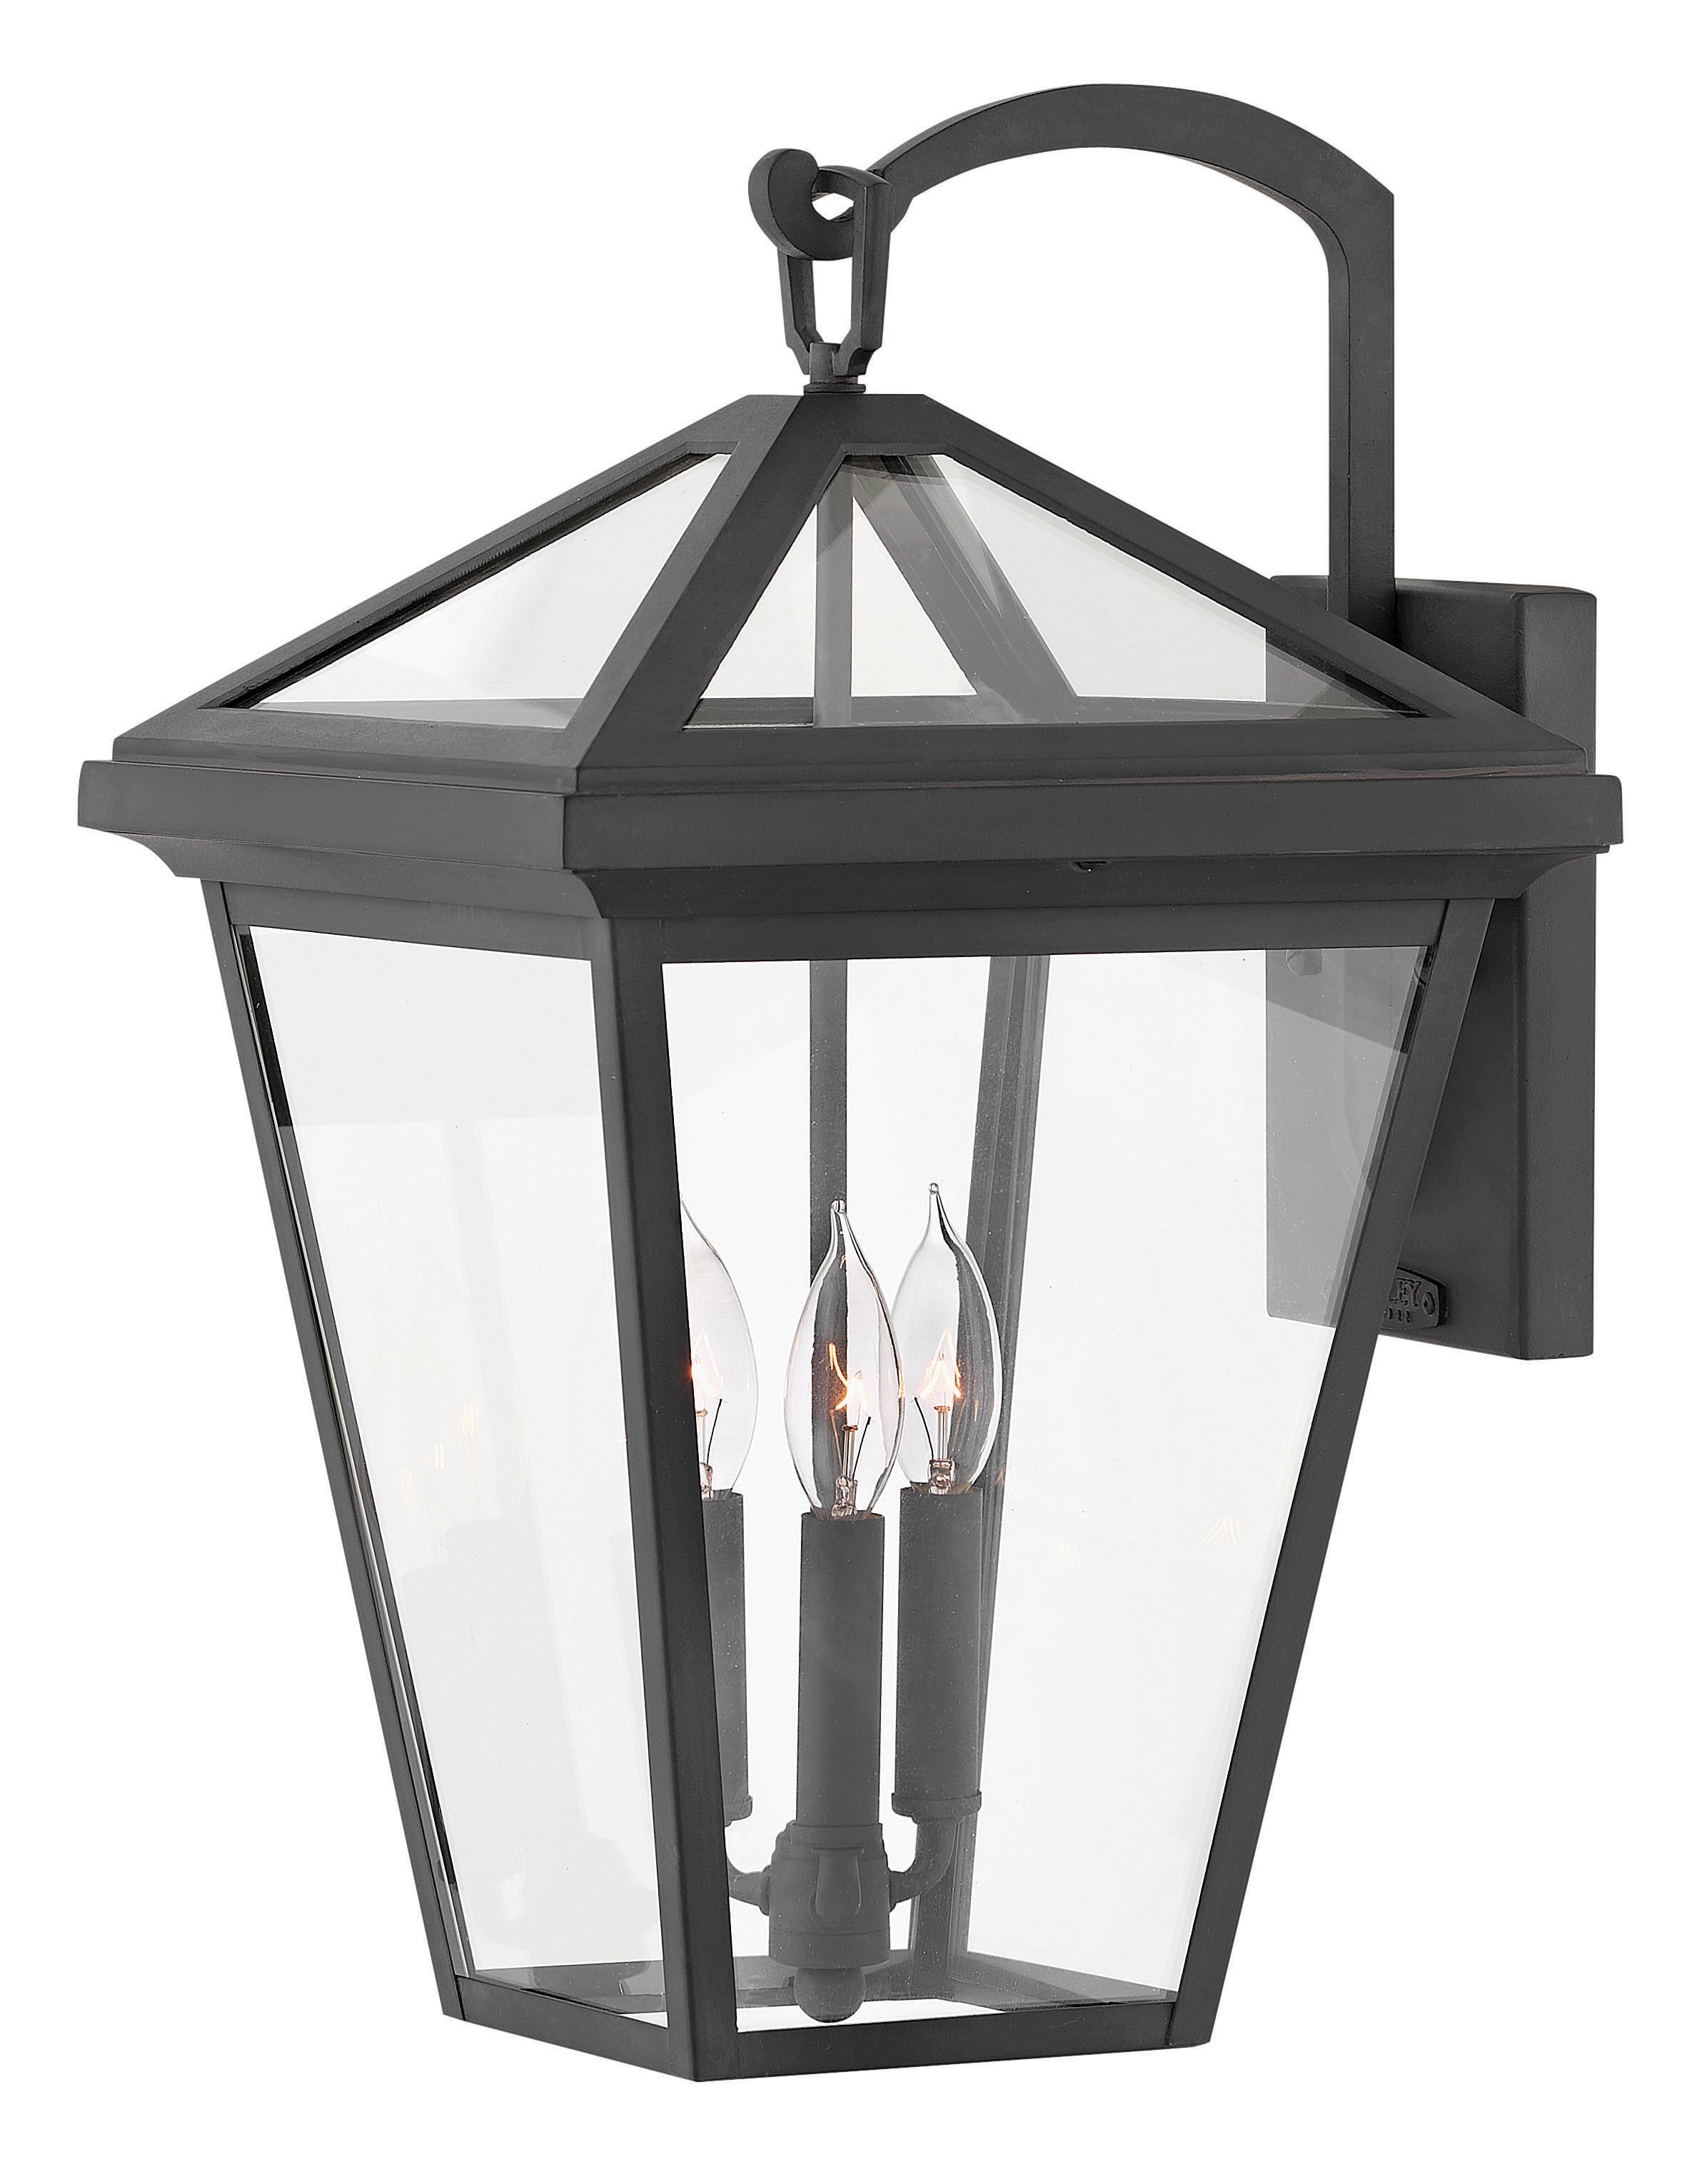 Hinkley Lighting 2565mb Museum Black Alford Place 3 Light 20 1 2 Tall Open Air Outdoor Wall Sconce Lightingdirect Com